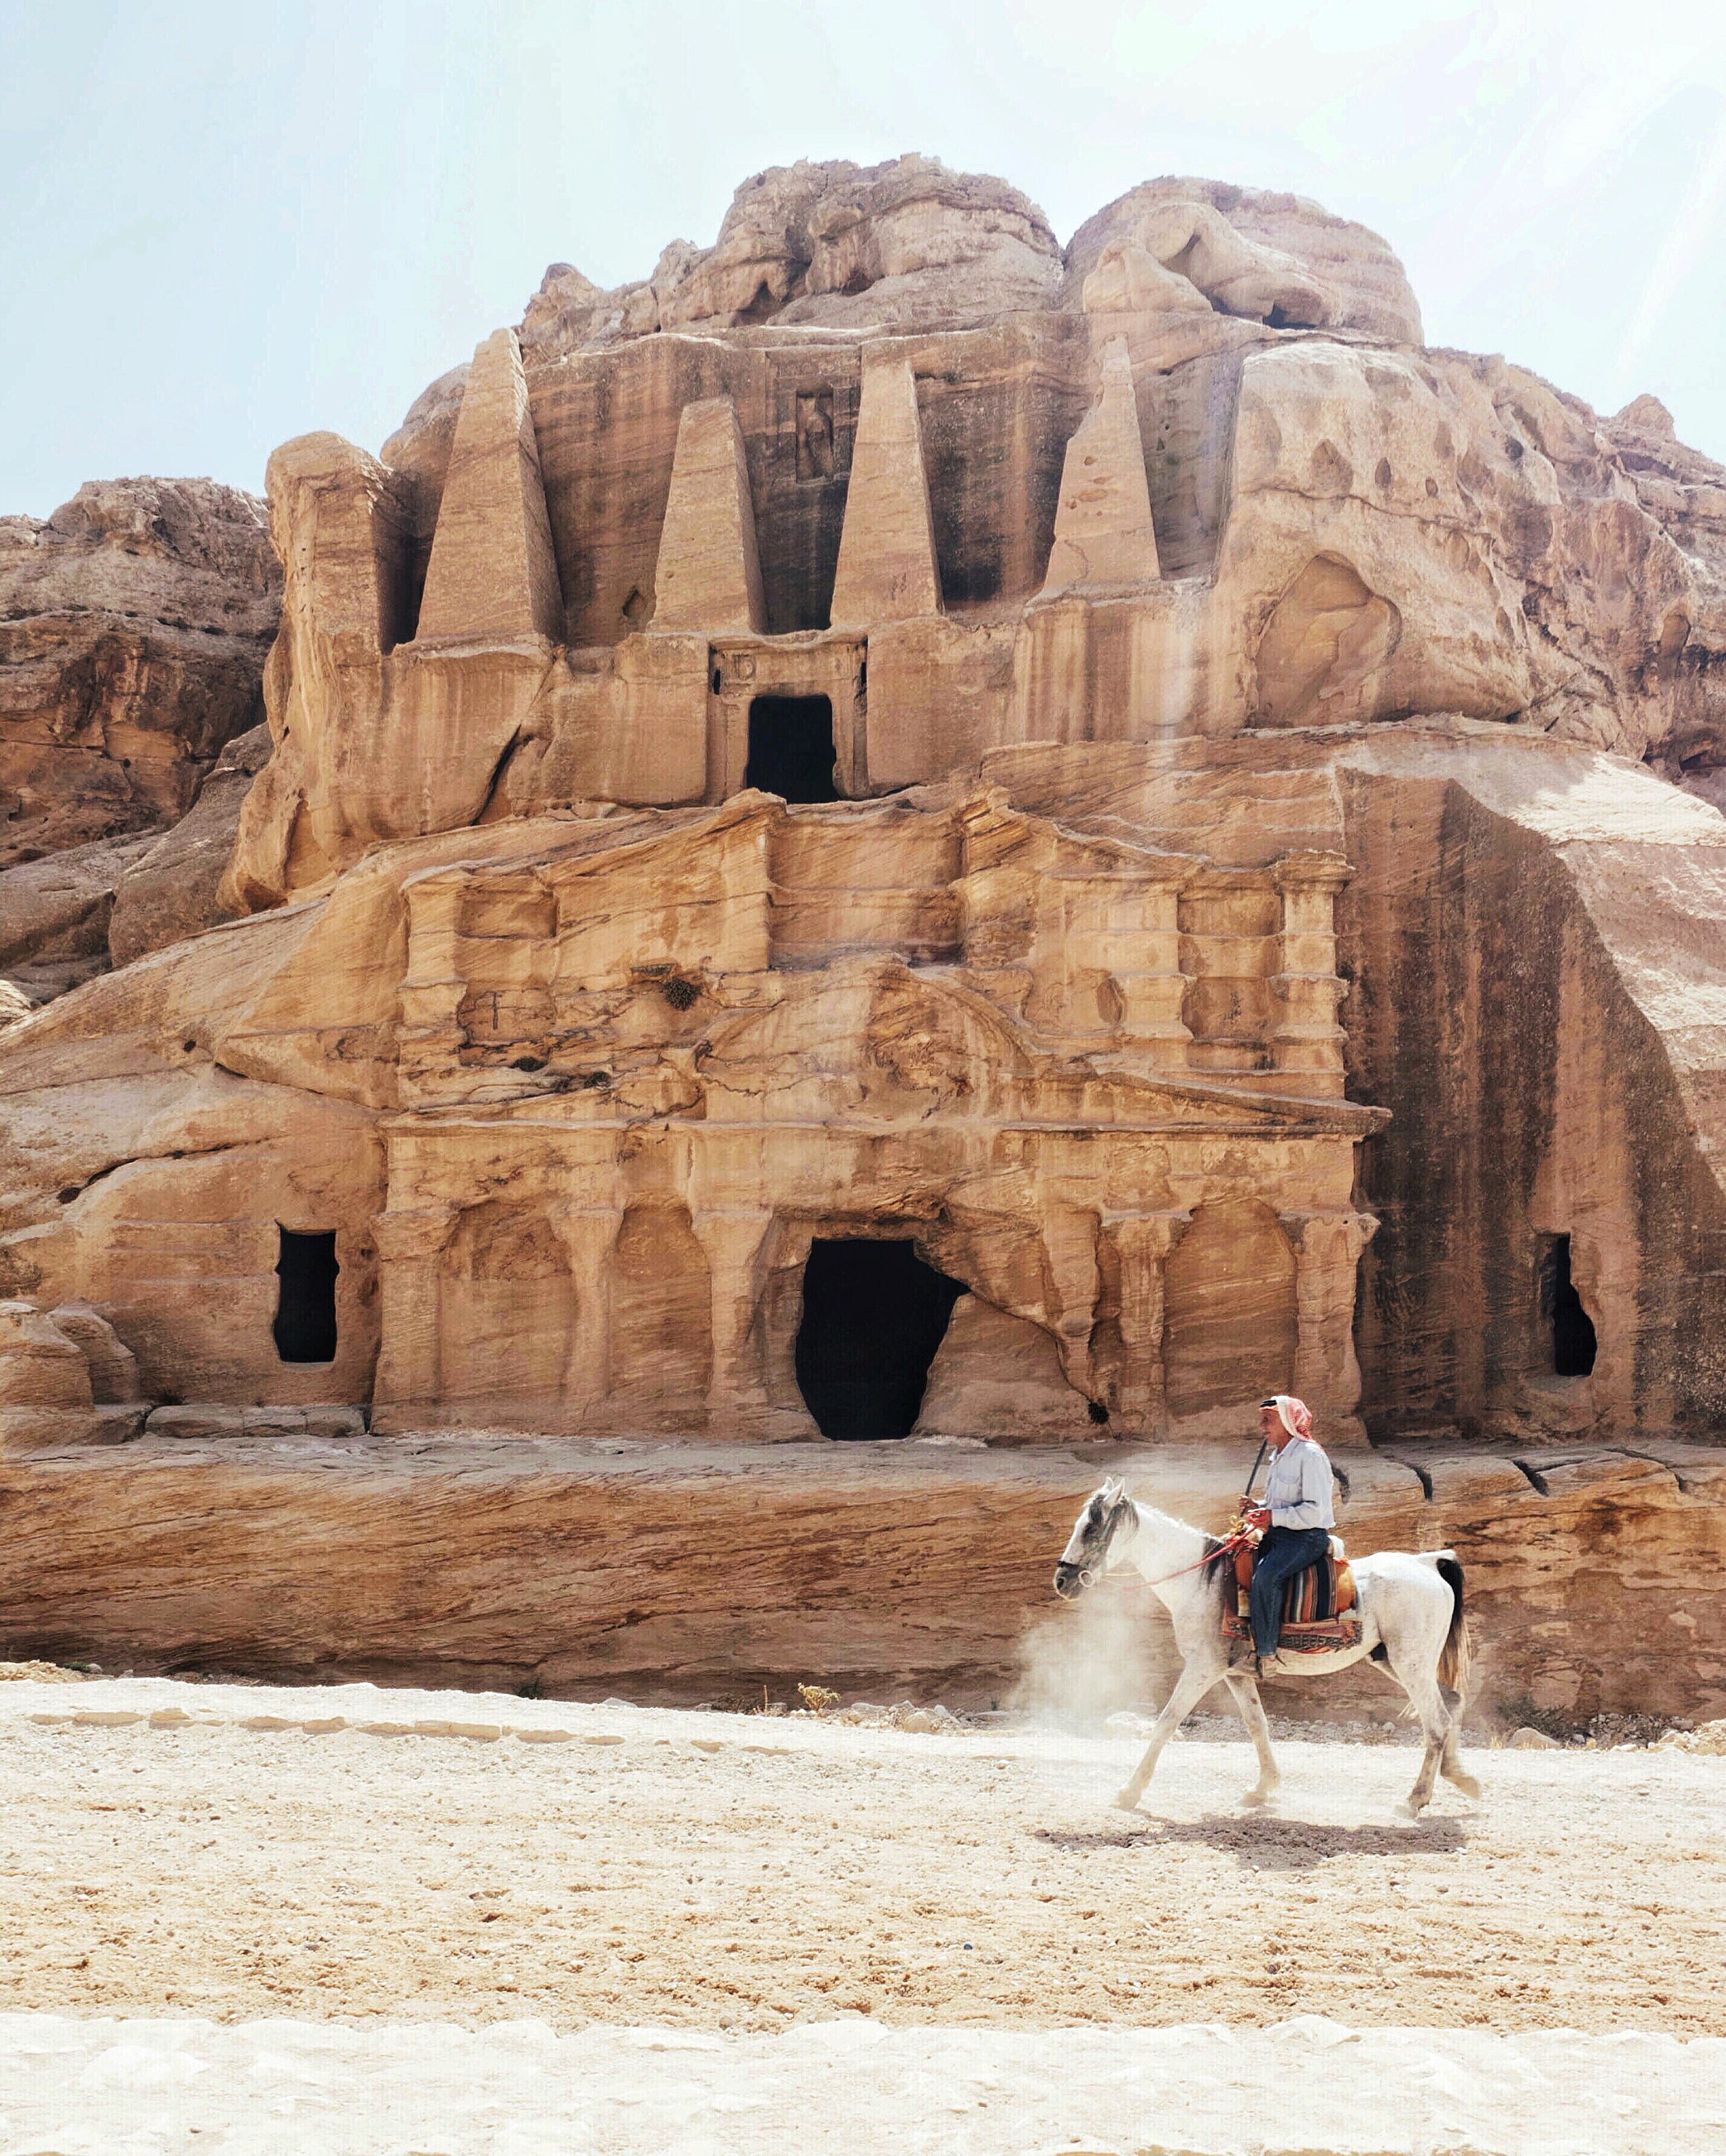 Horse-ride-through-petra-jordan